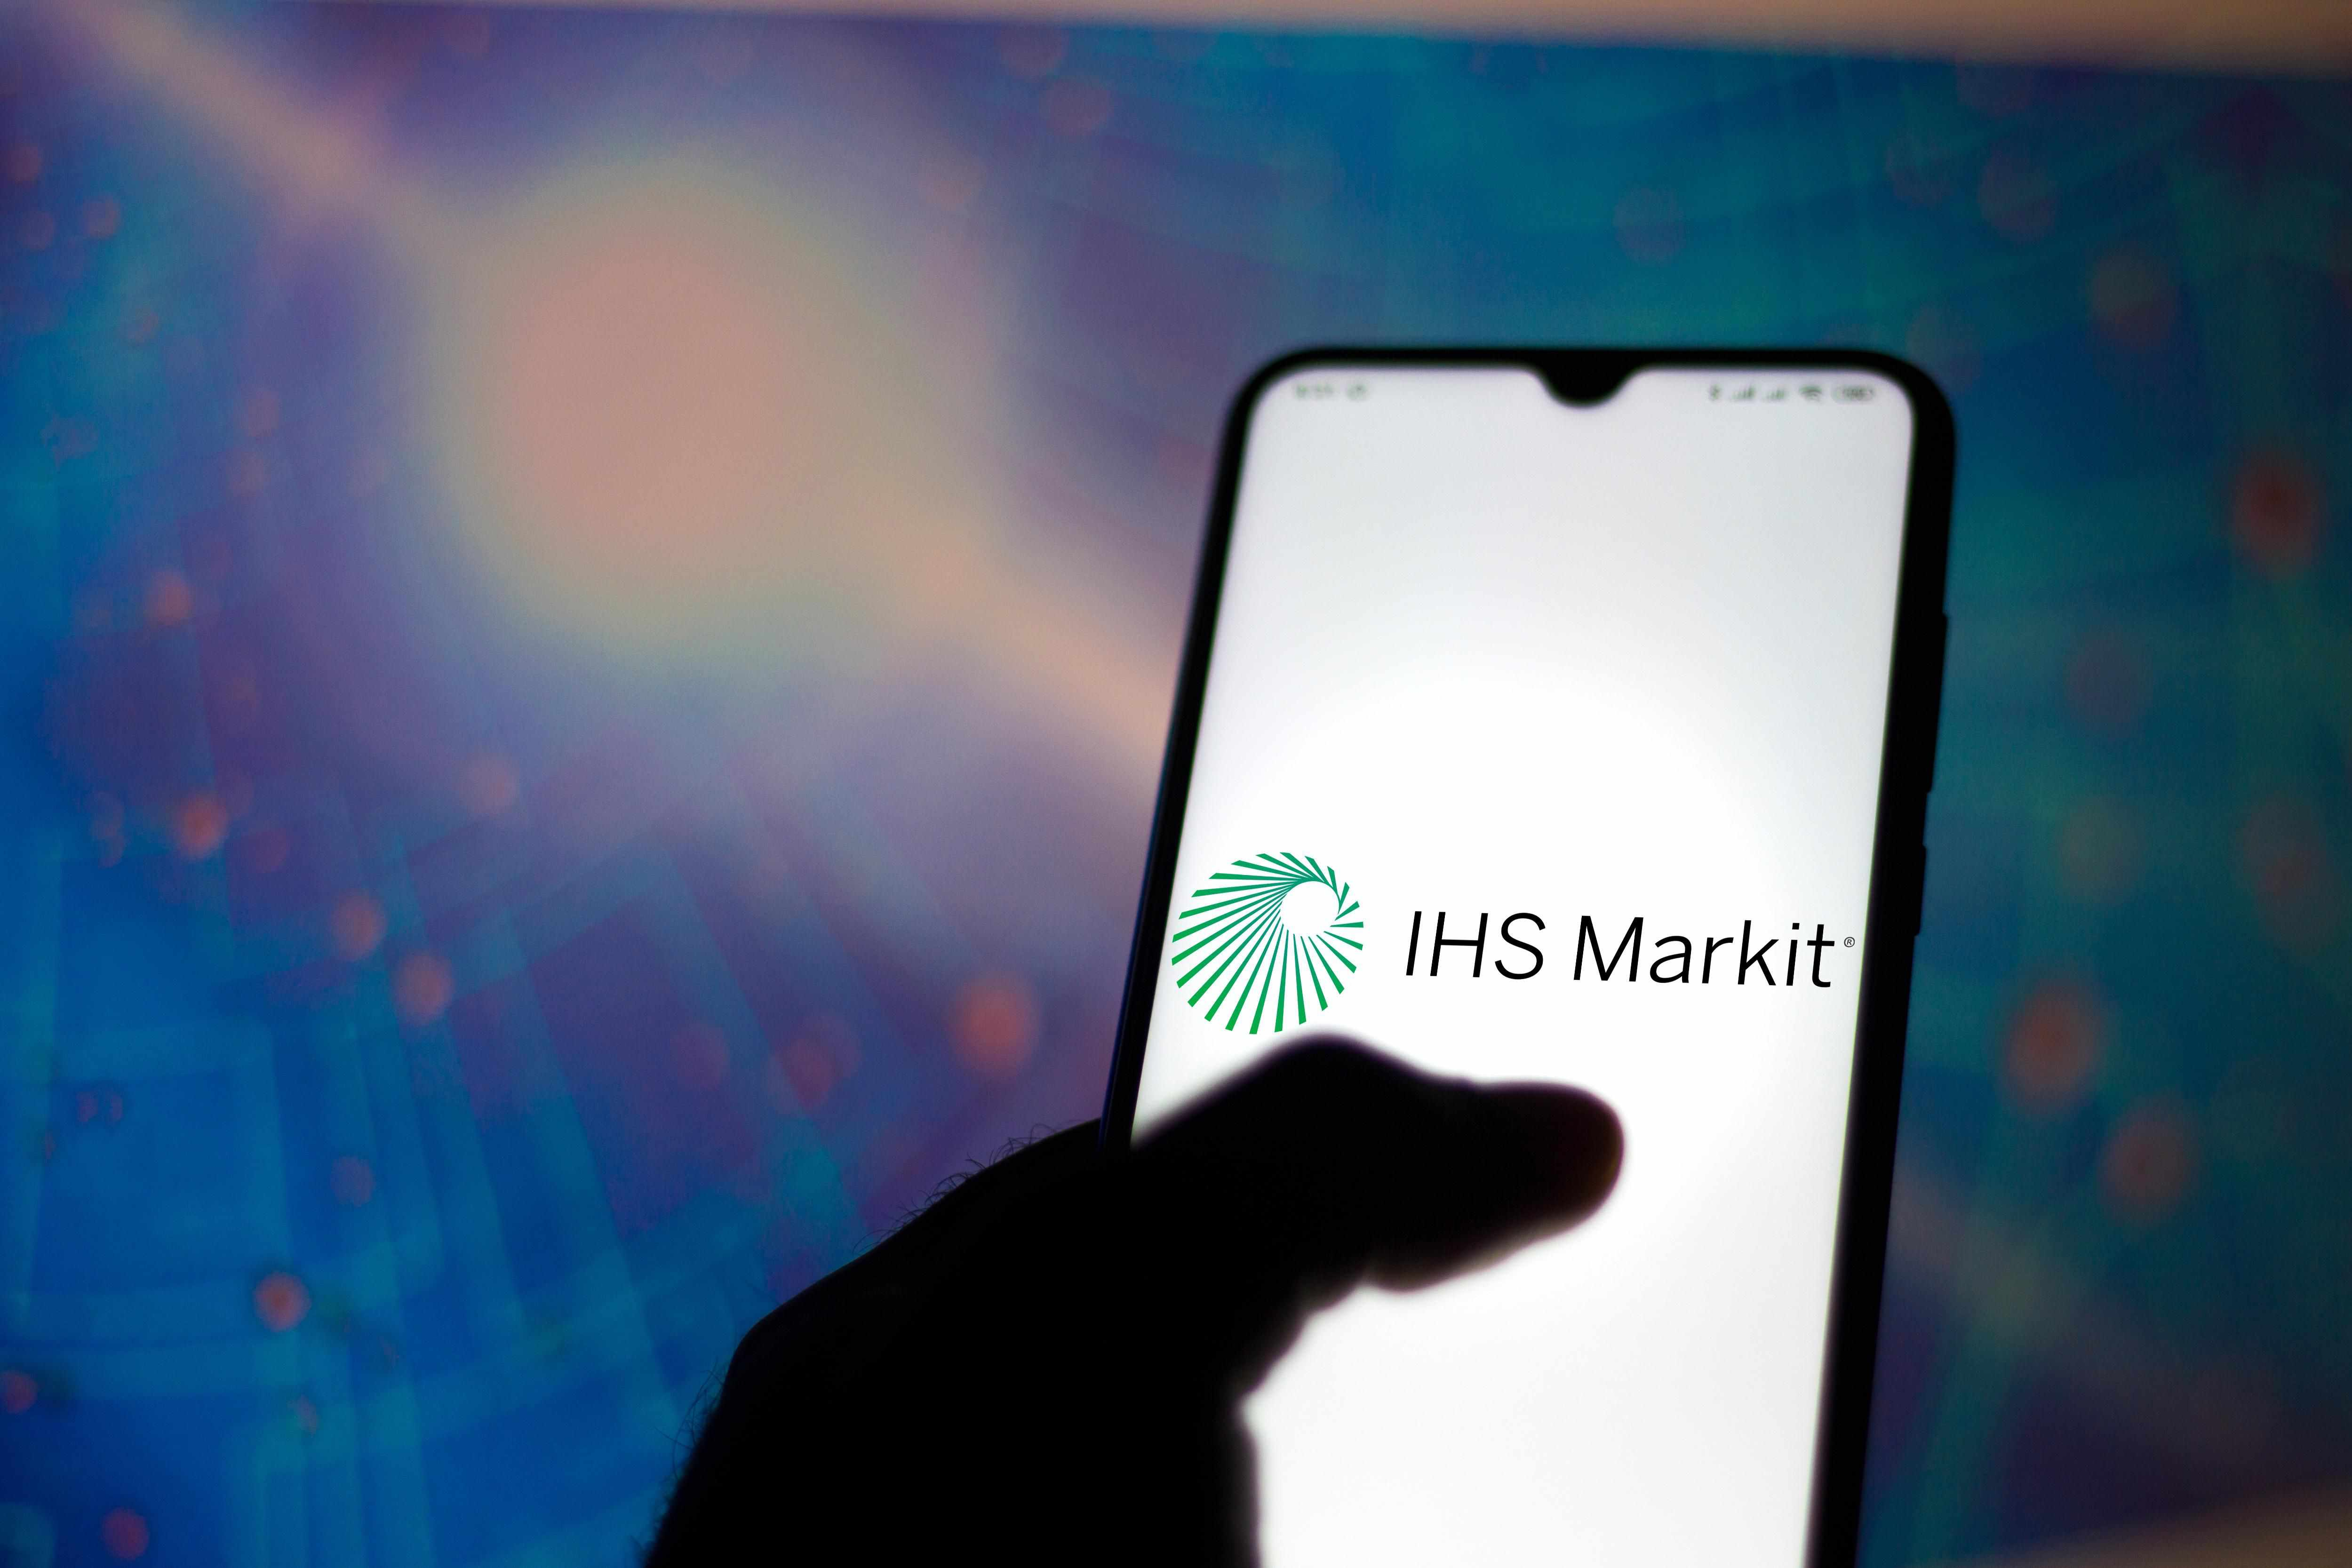 ihs markit results segment